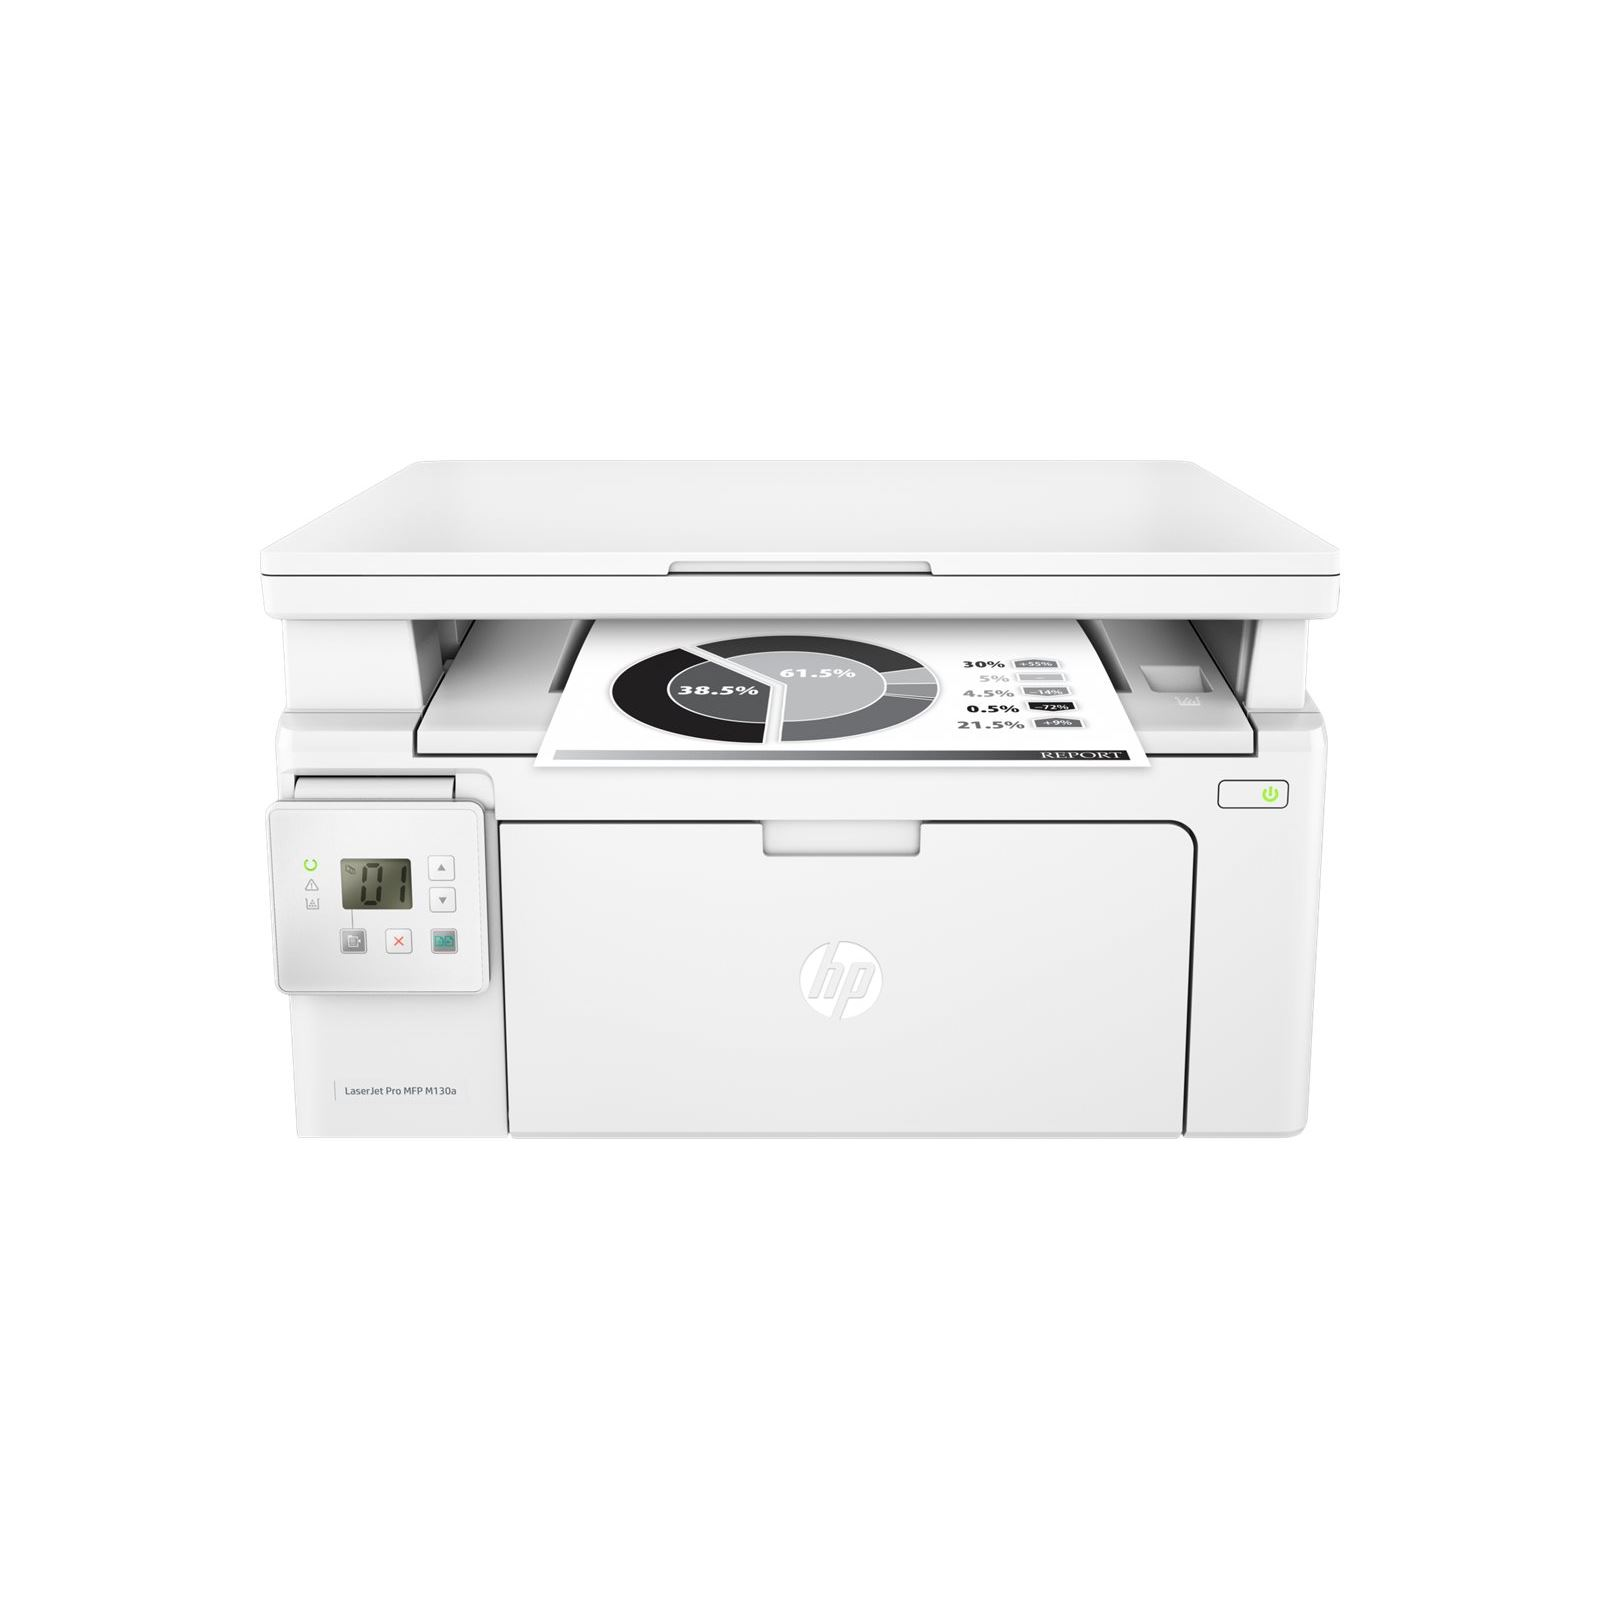 HP LaserJet Pro M130a Multifunction Printer